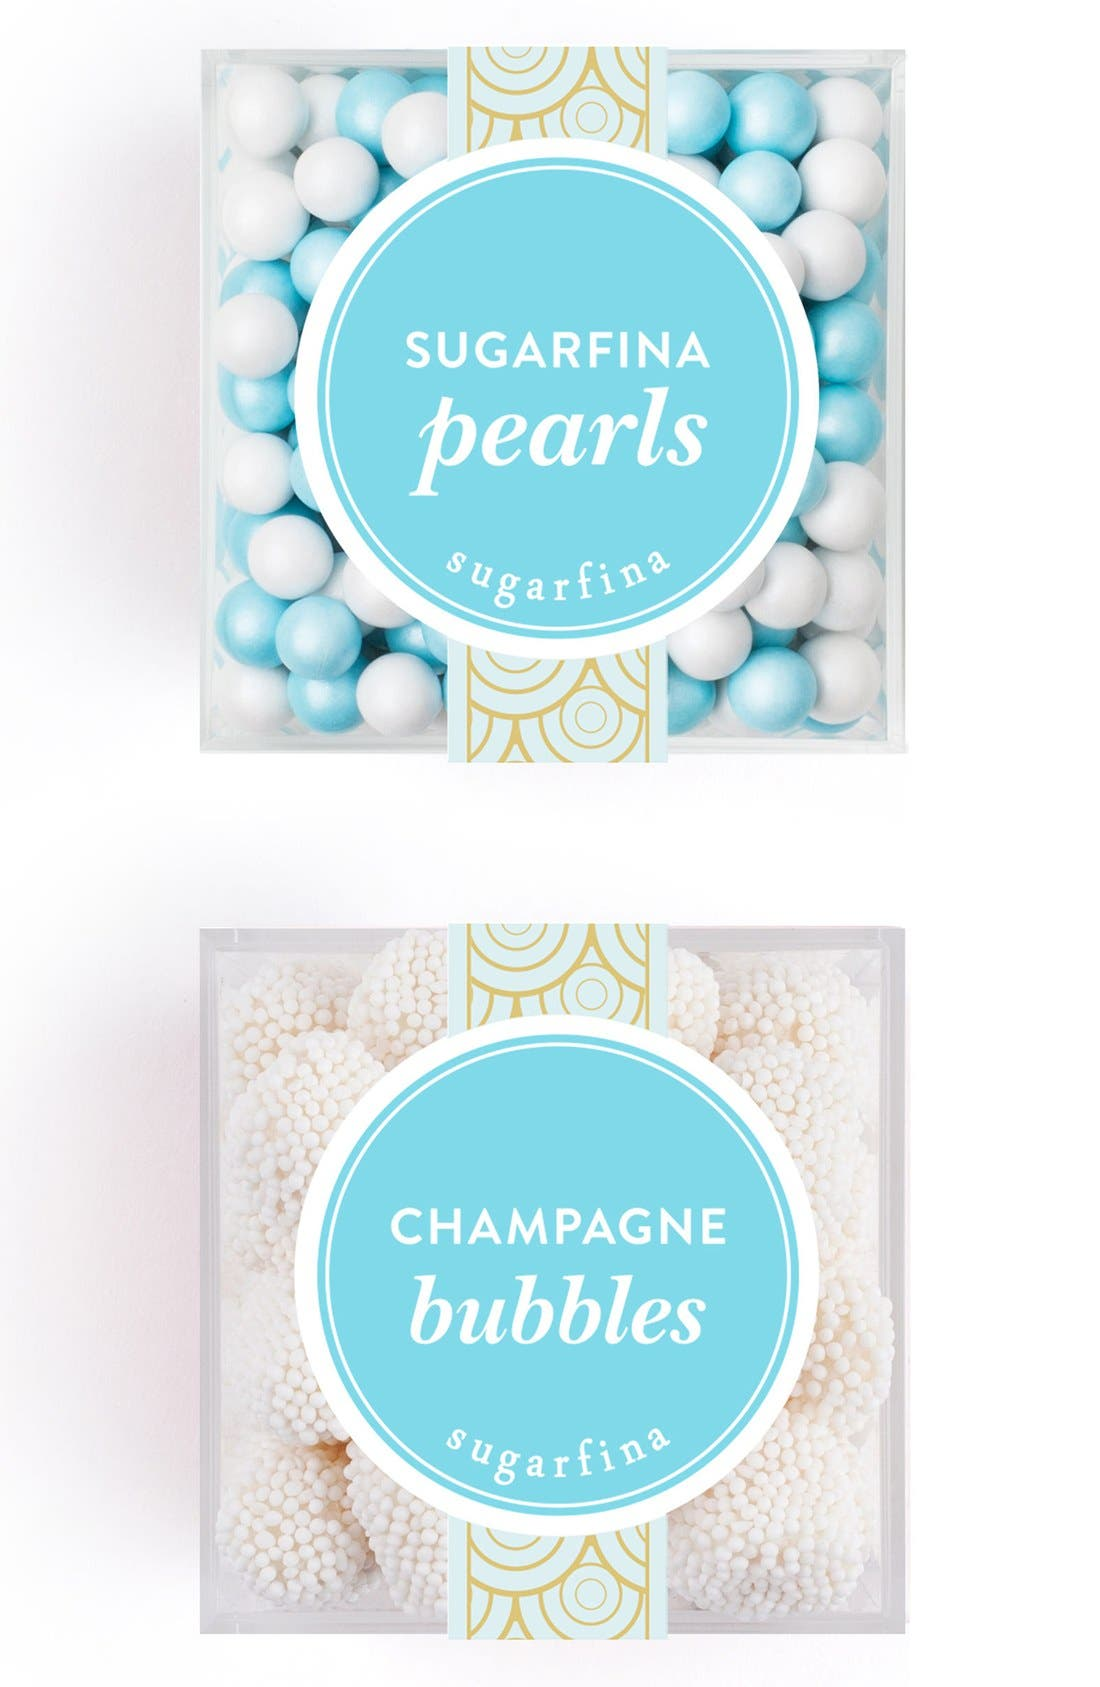 Alternate Image 1 Selected - sugarfina Pearls & Champagne Bubbles Gift Box Set